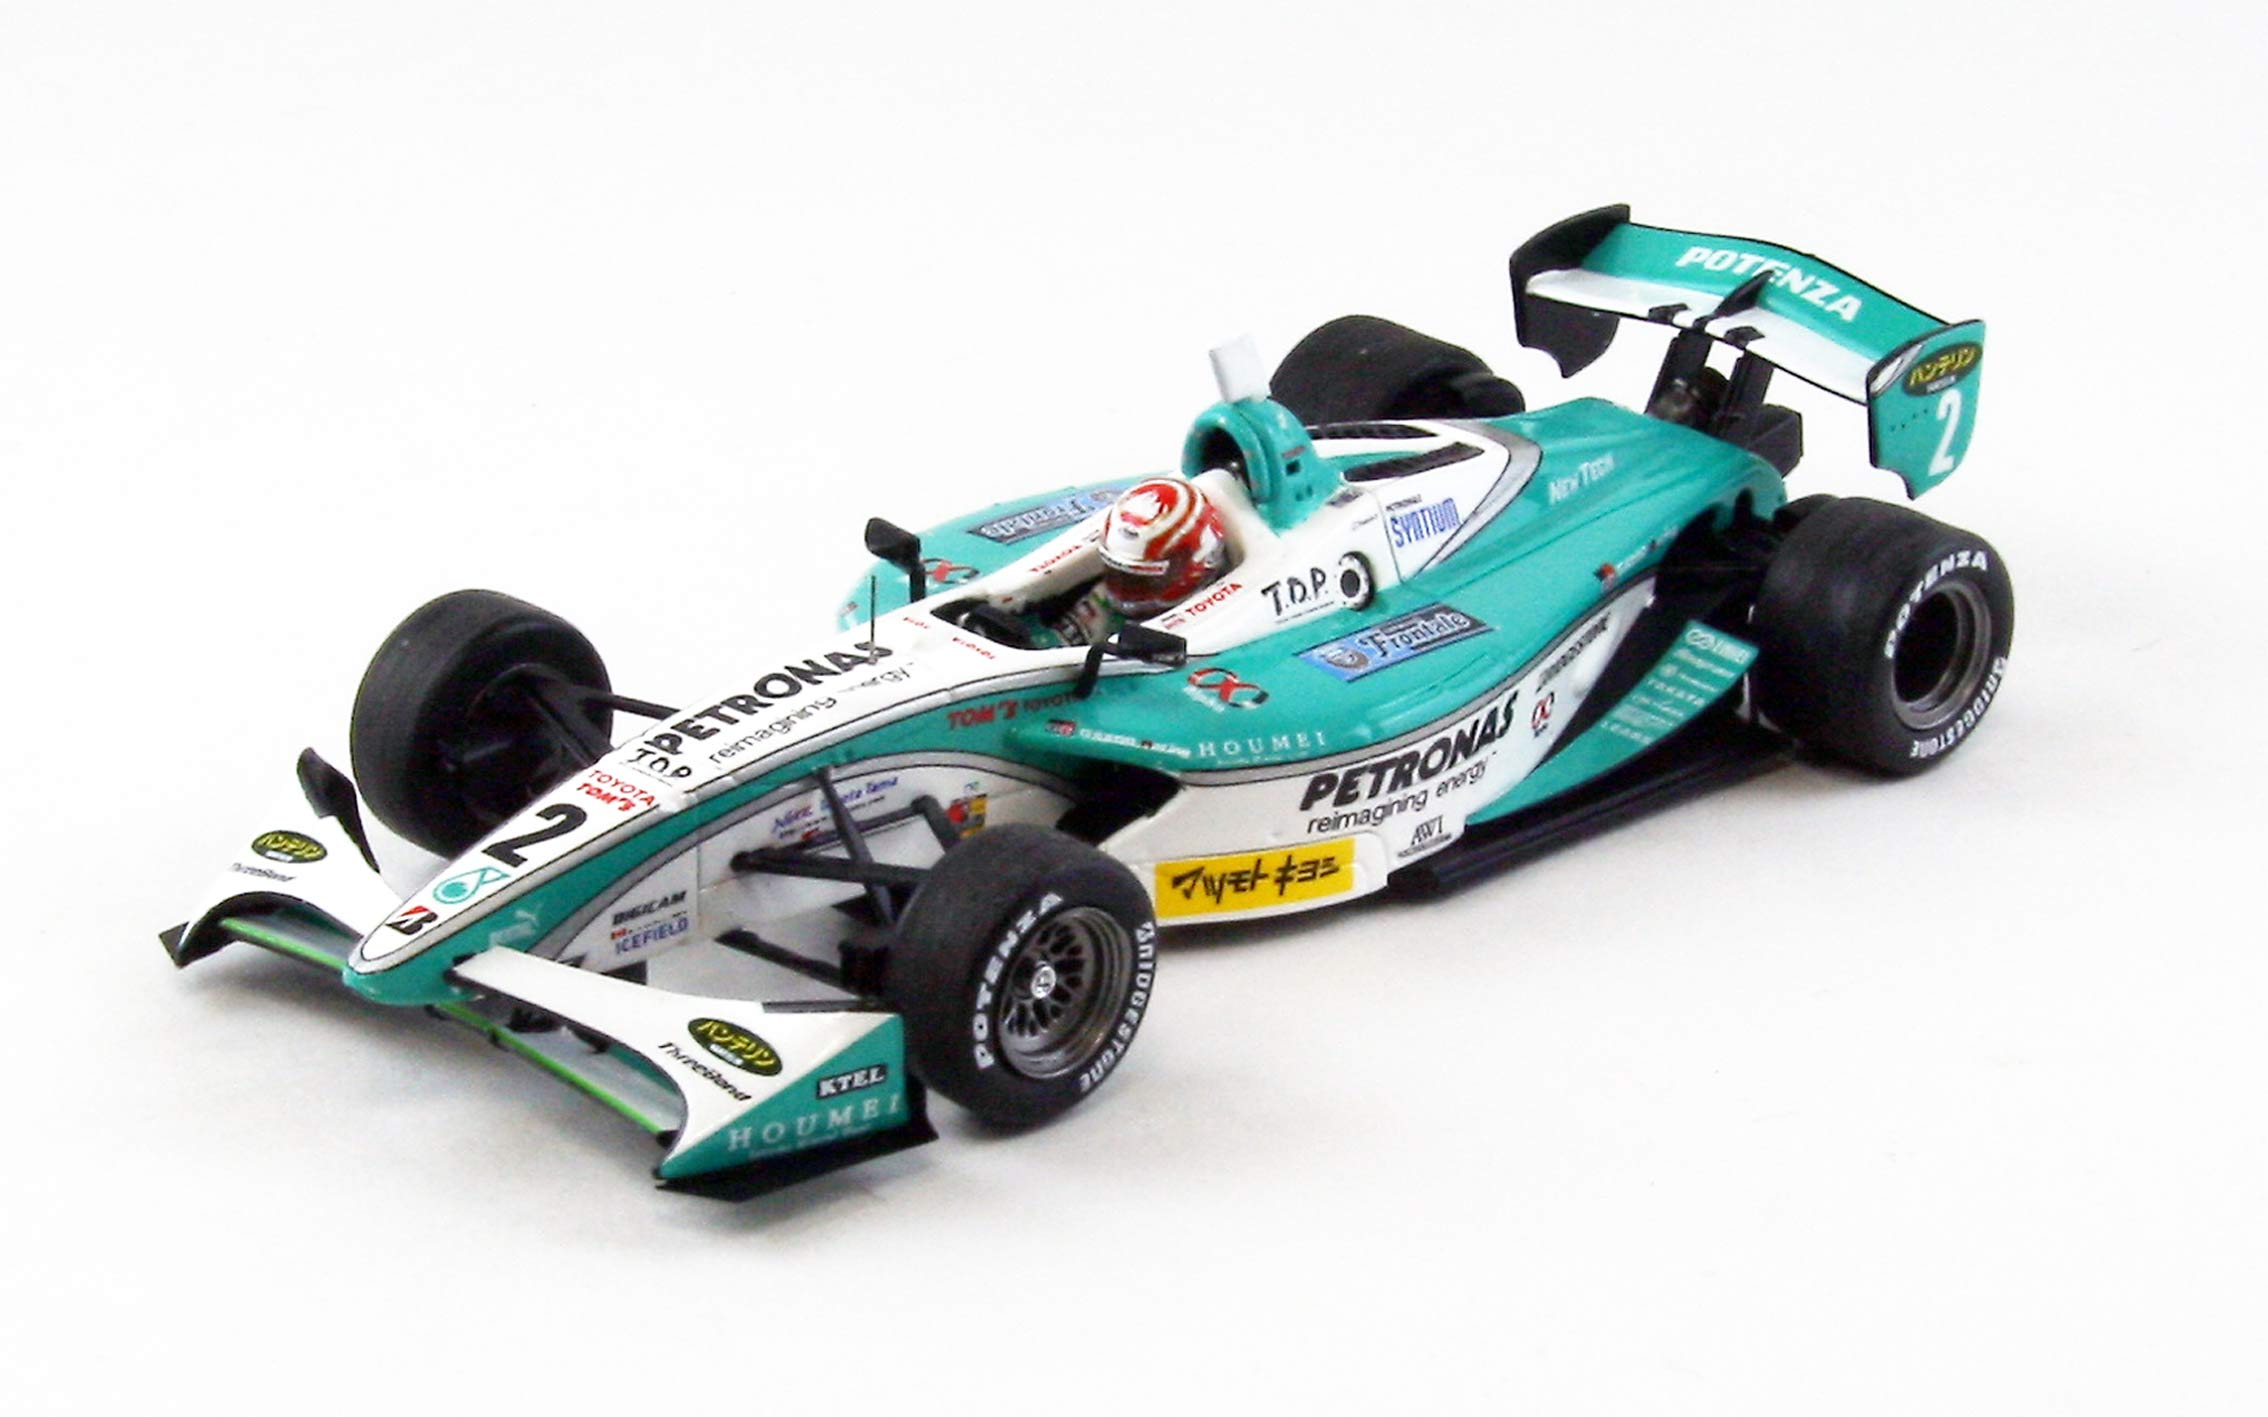 【44855】PETRONAS TEAM TOM'S No. 2 Formula NIPPON 2012 【RESIN】